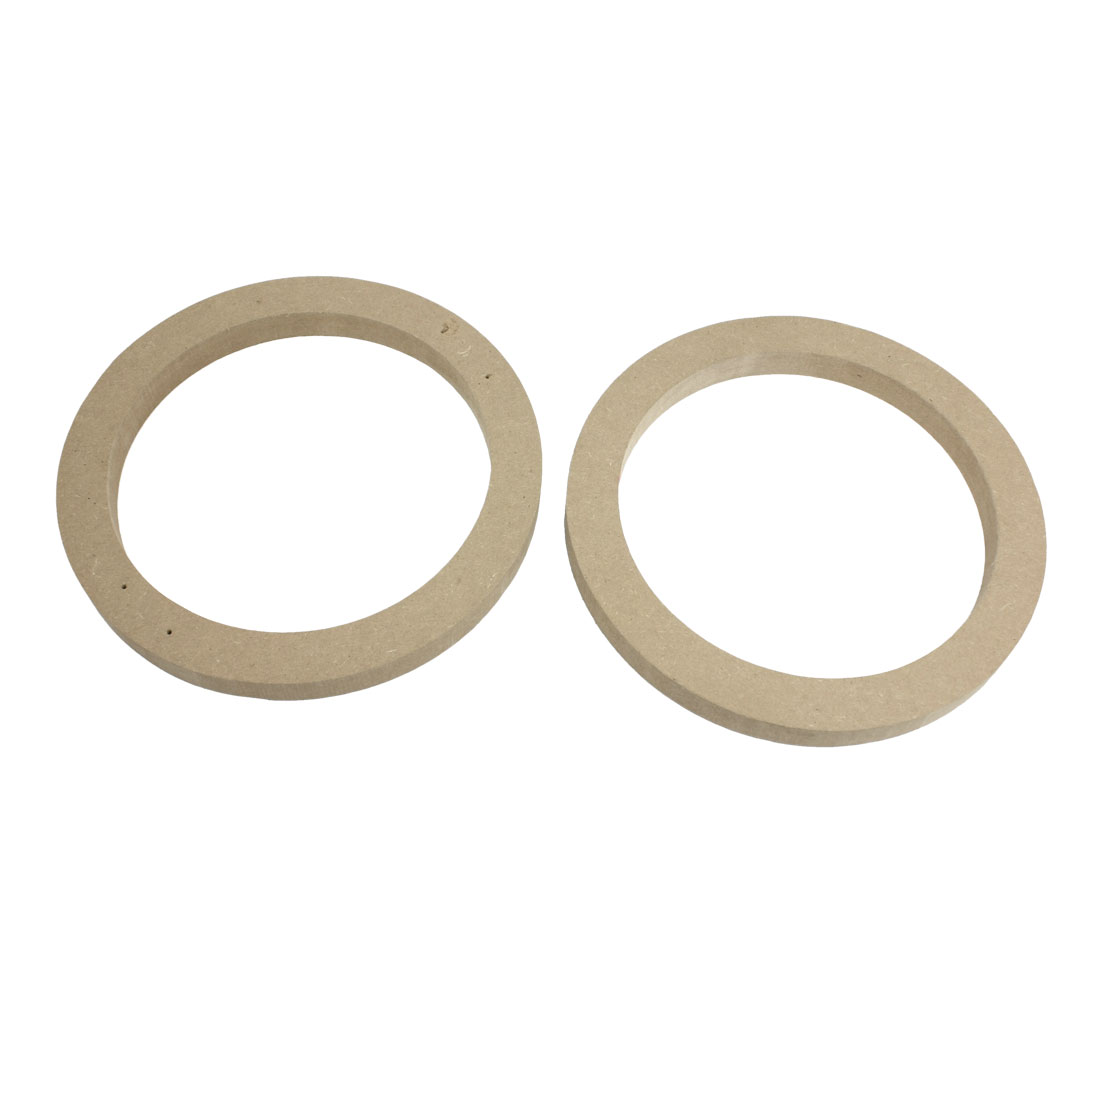 "Vehicle Car Khaki 6.5"" Wooden Speaker Spacers 15mm Depth 2 Pcs"